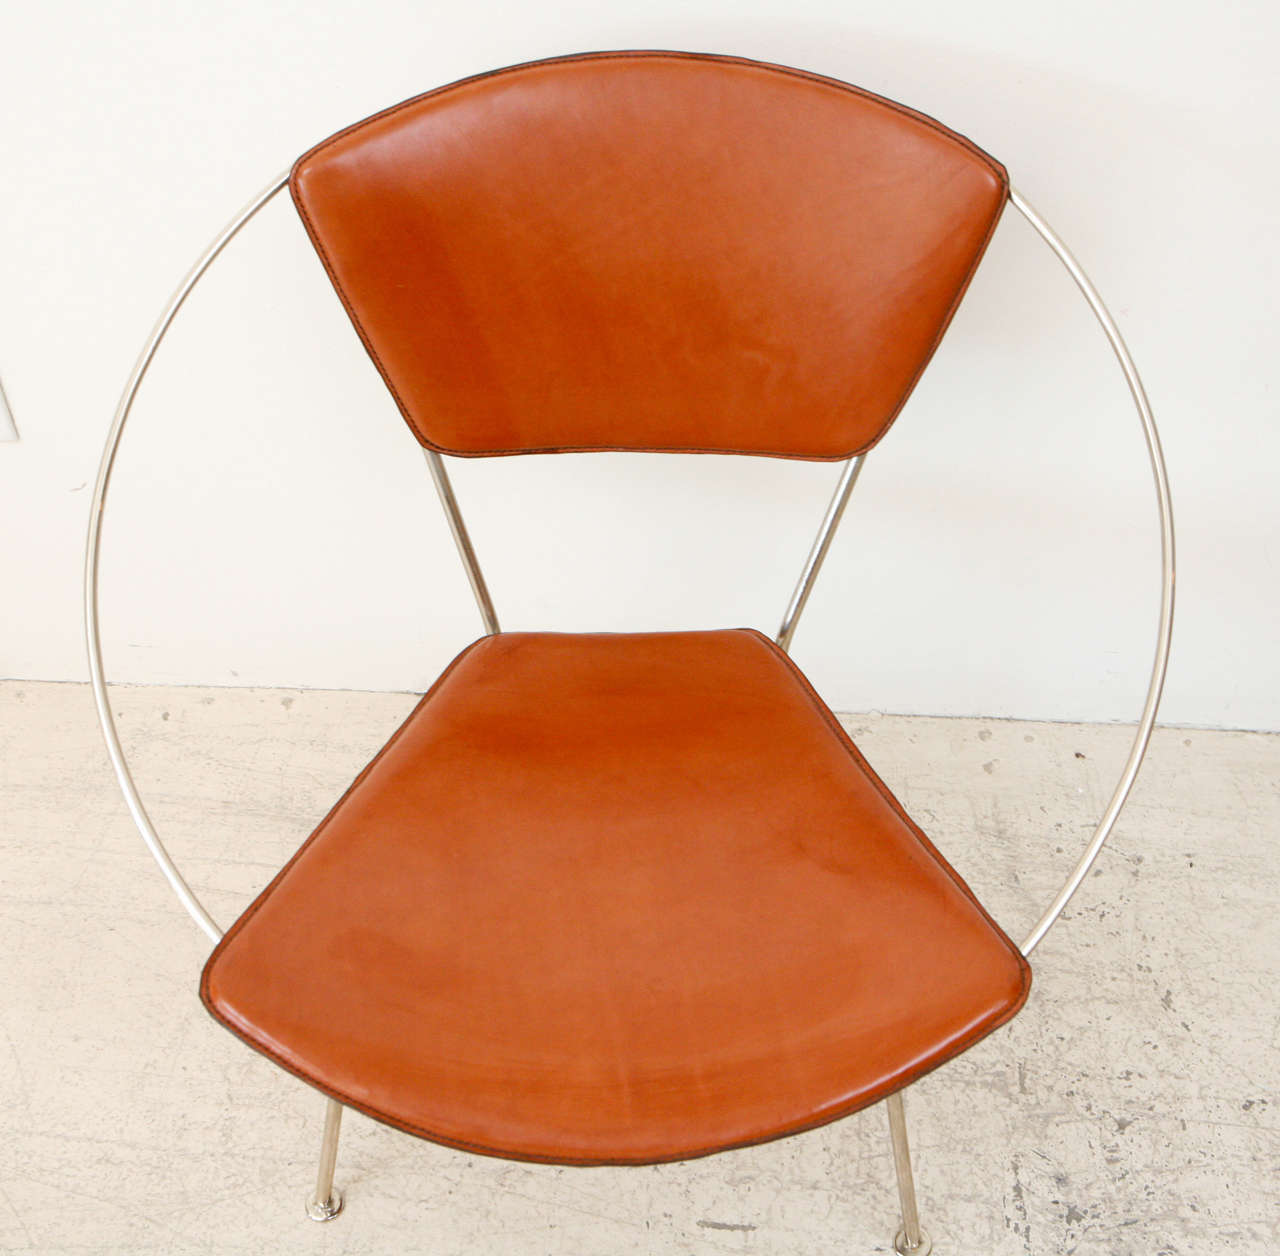 Penccil : : : Summer Seating: Hoop Chairs By Raymond Loewy, Hans J. Wegner  And Franco Albini